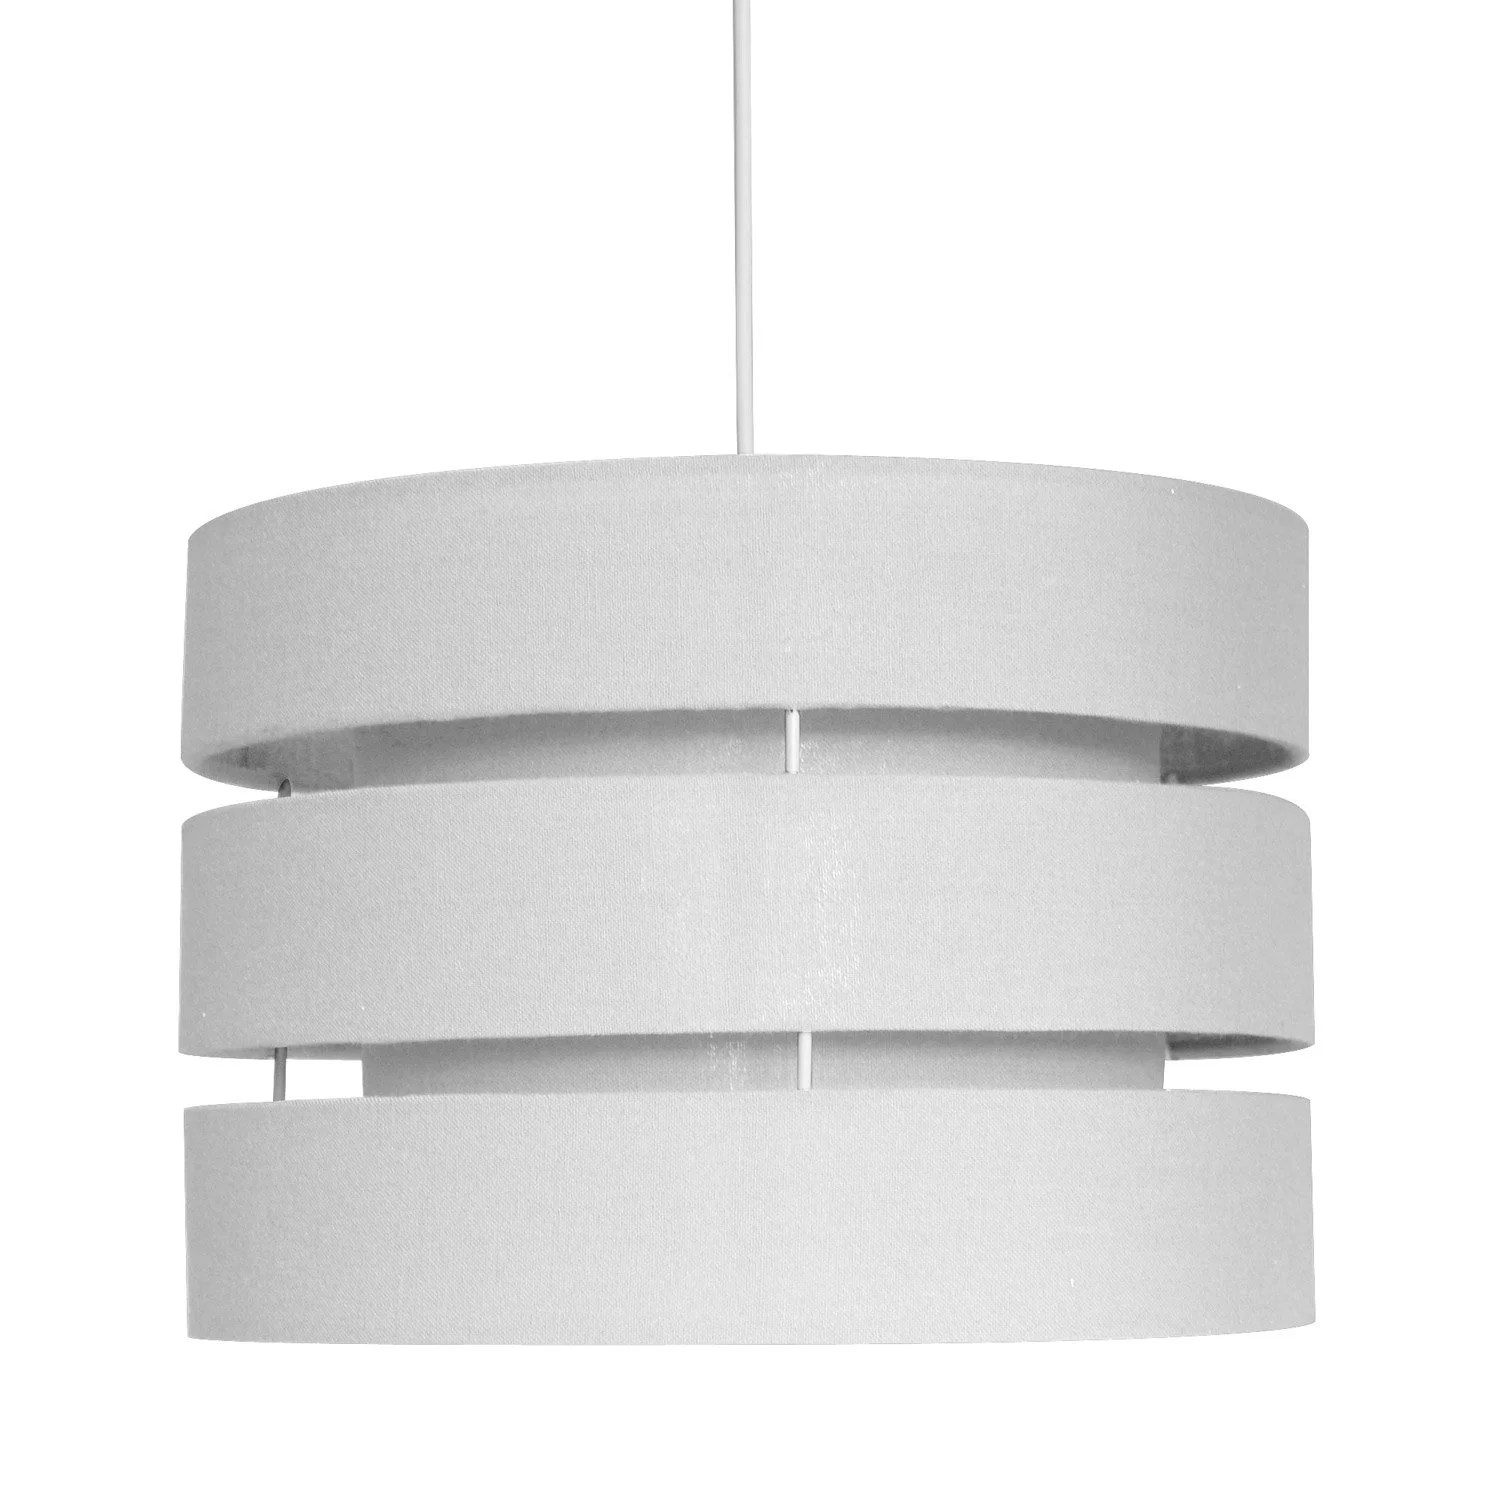 Suspension Lin Suspension E27 Design Darling Lin Blanc 1 X 40 W Seynave